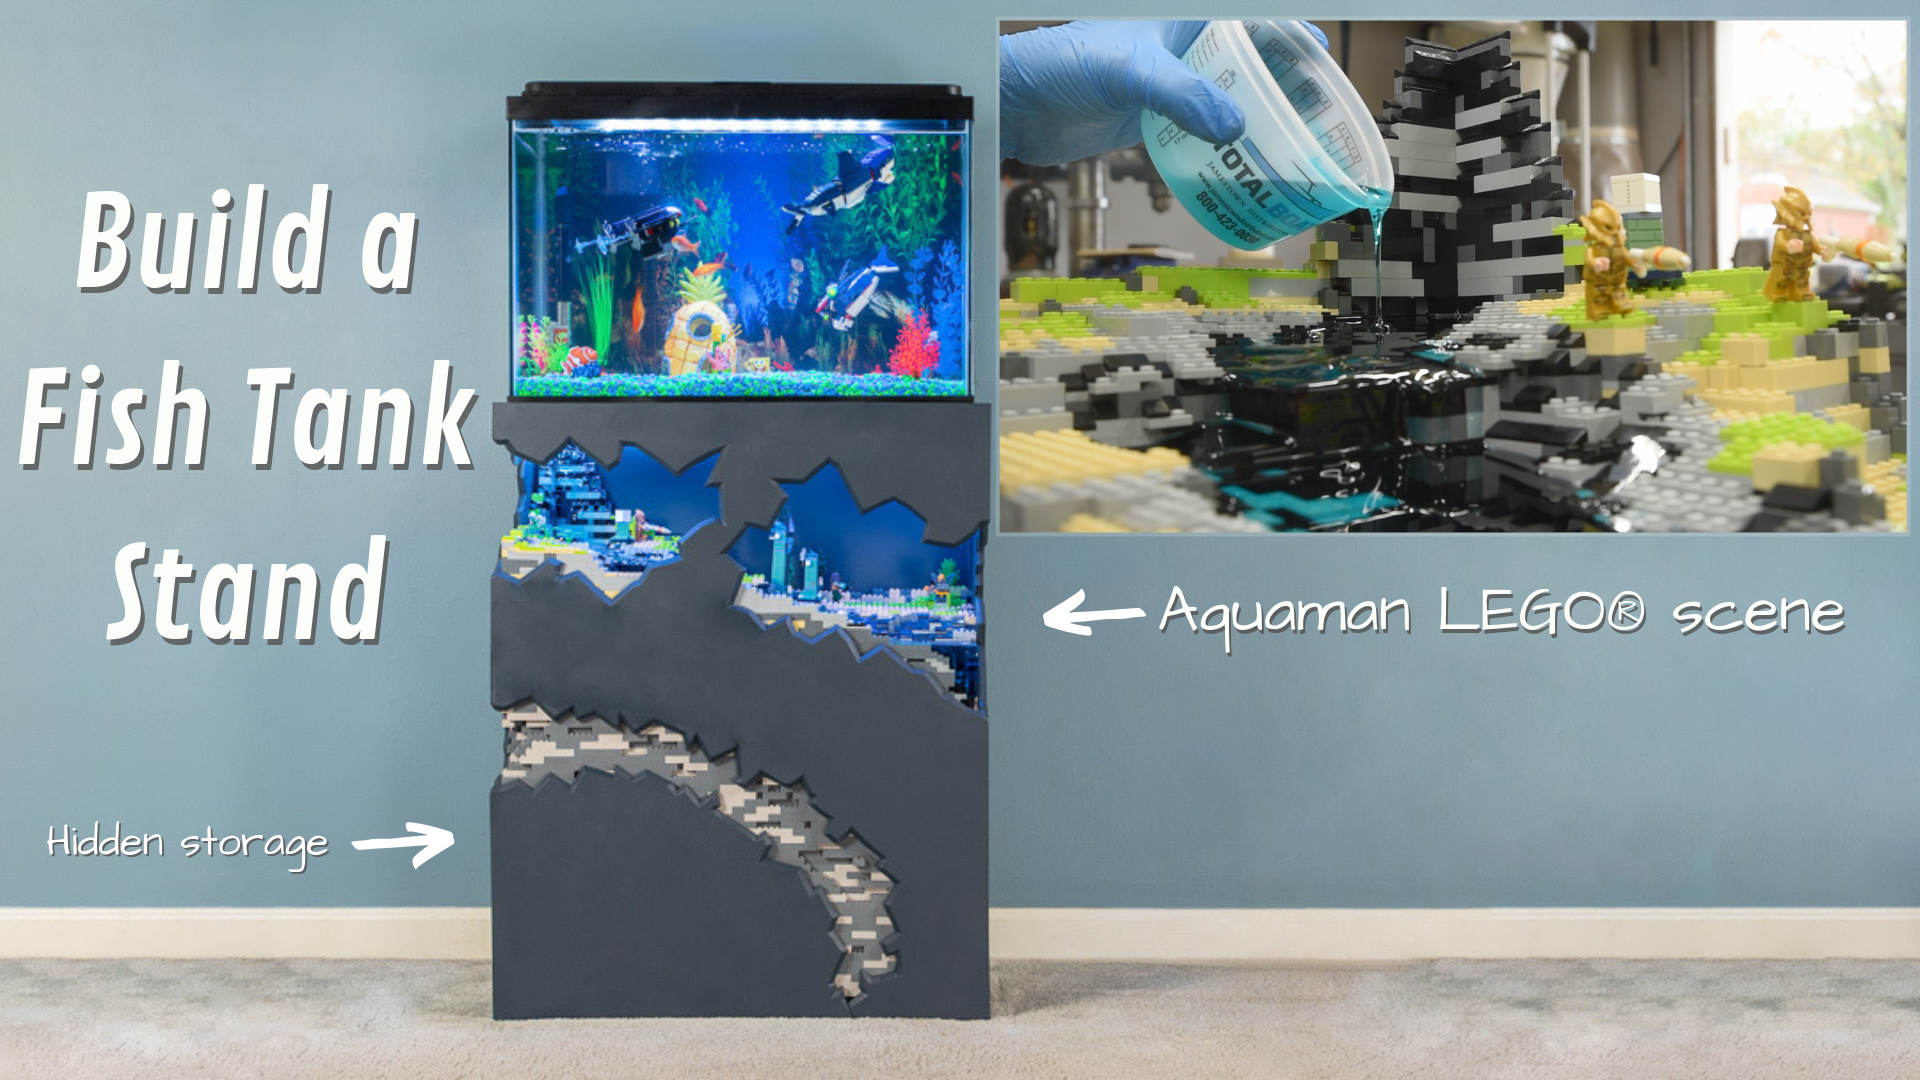 Build a Fish Tank Stand with hidden storage and aquaman lego scene